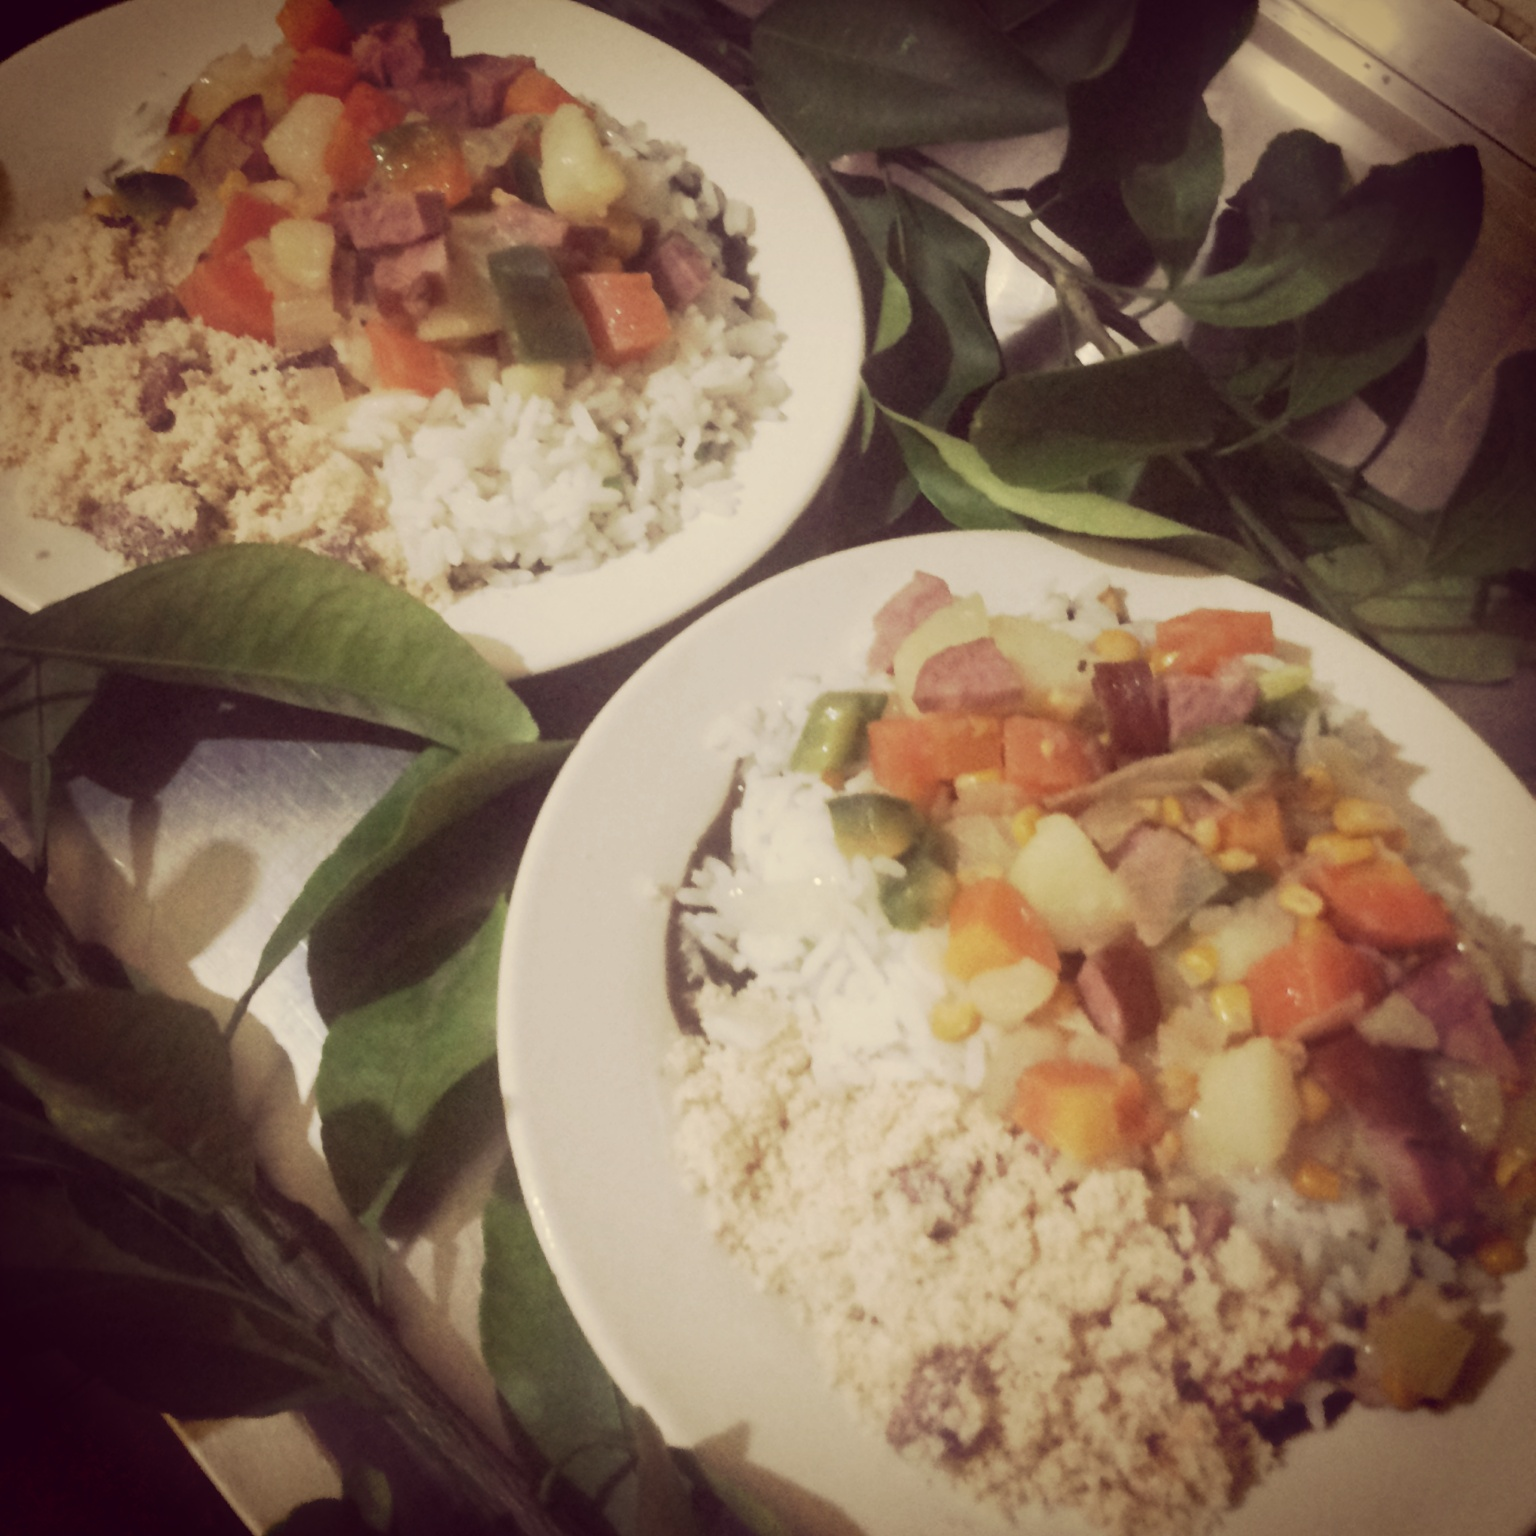 Free photograph; natural, lunch, vegetables, rice, healthy, meal